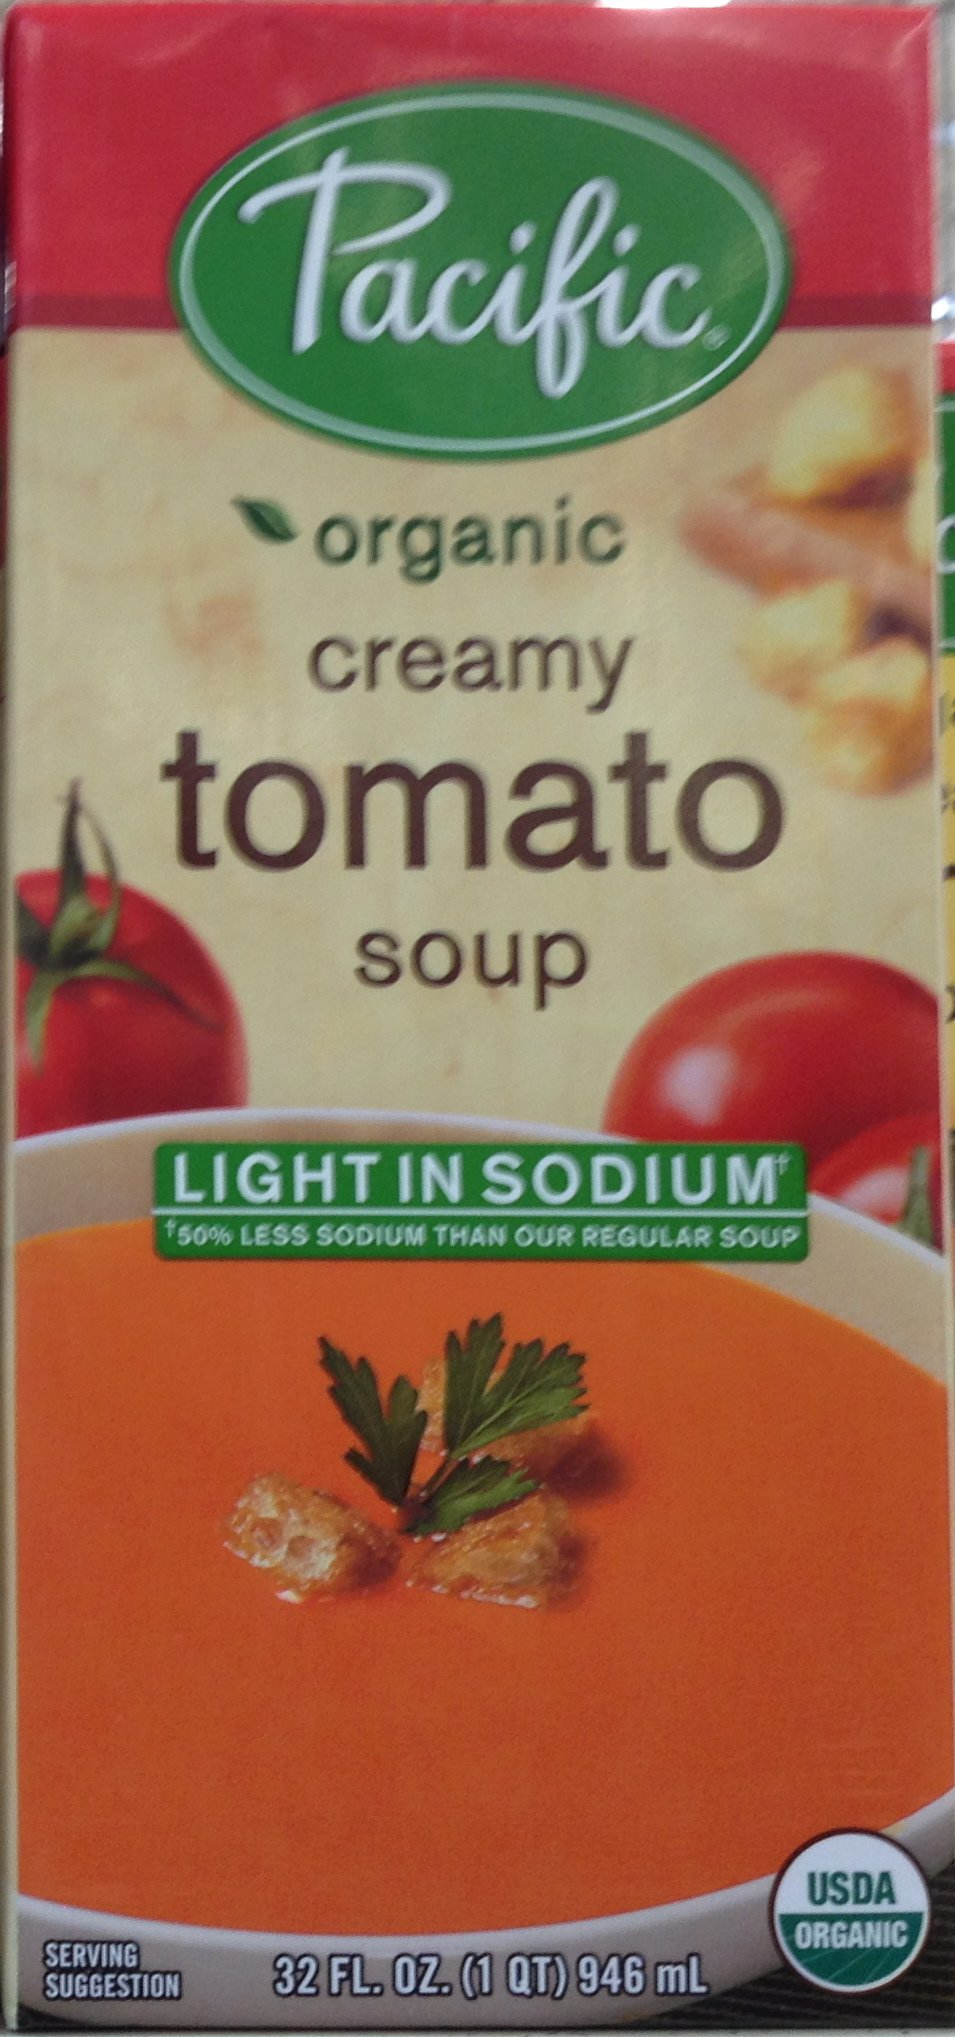 Pacific Foods Soup Lsodium Crmy Tmo Org